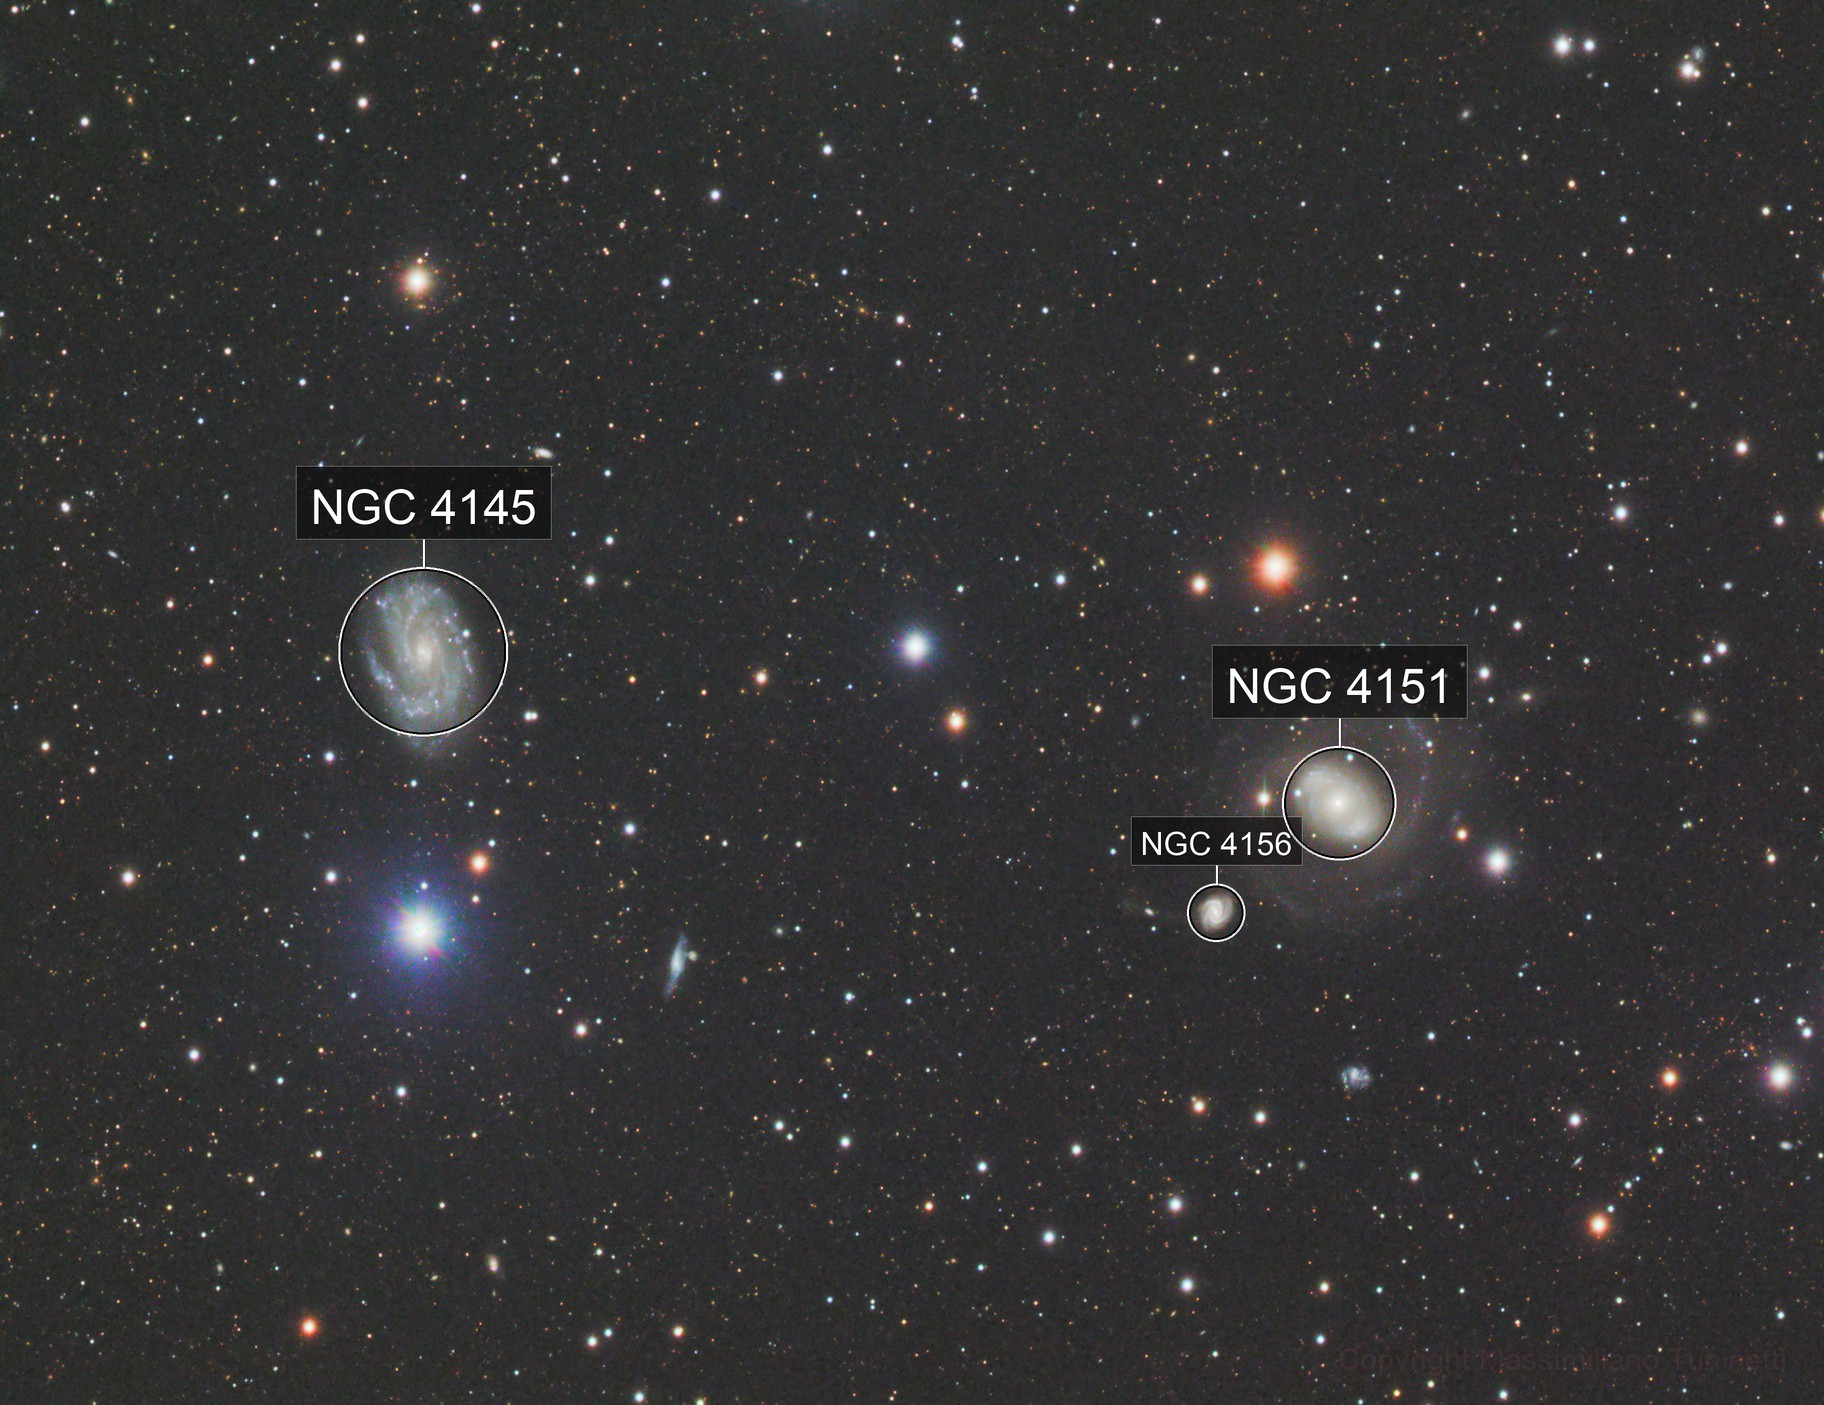 NGC4151 & NGC4145 in Canes Venatici L_RGB